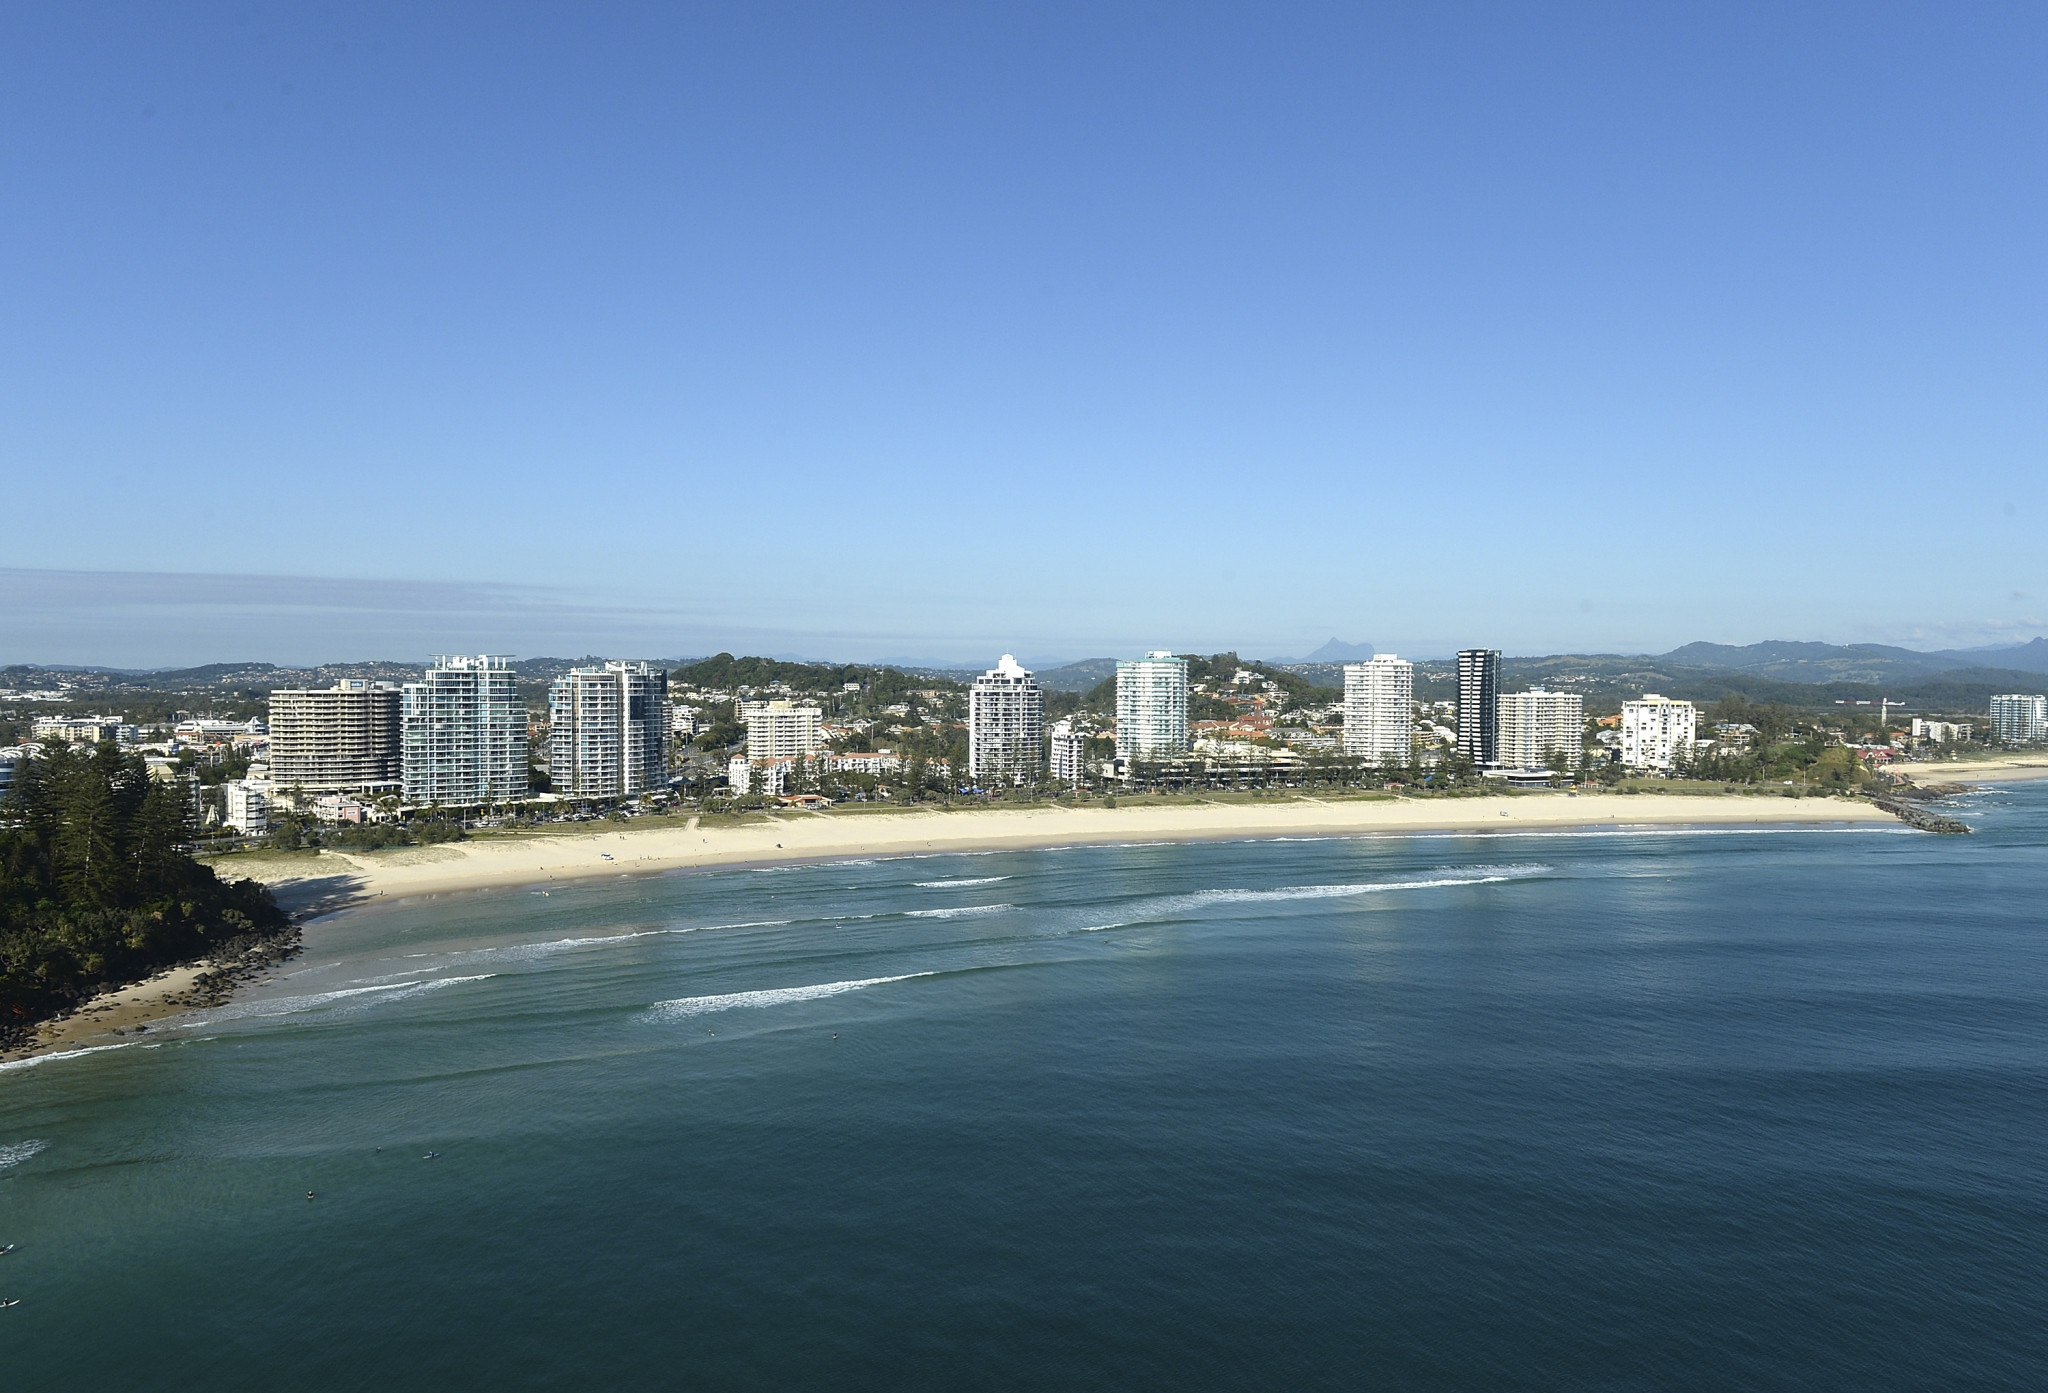 Gold Coast 2018 organisers to import sand from Brisbane for beach volleyball competition